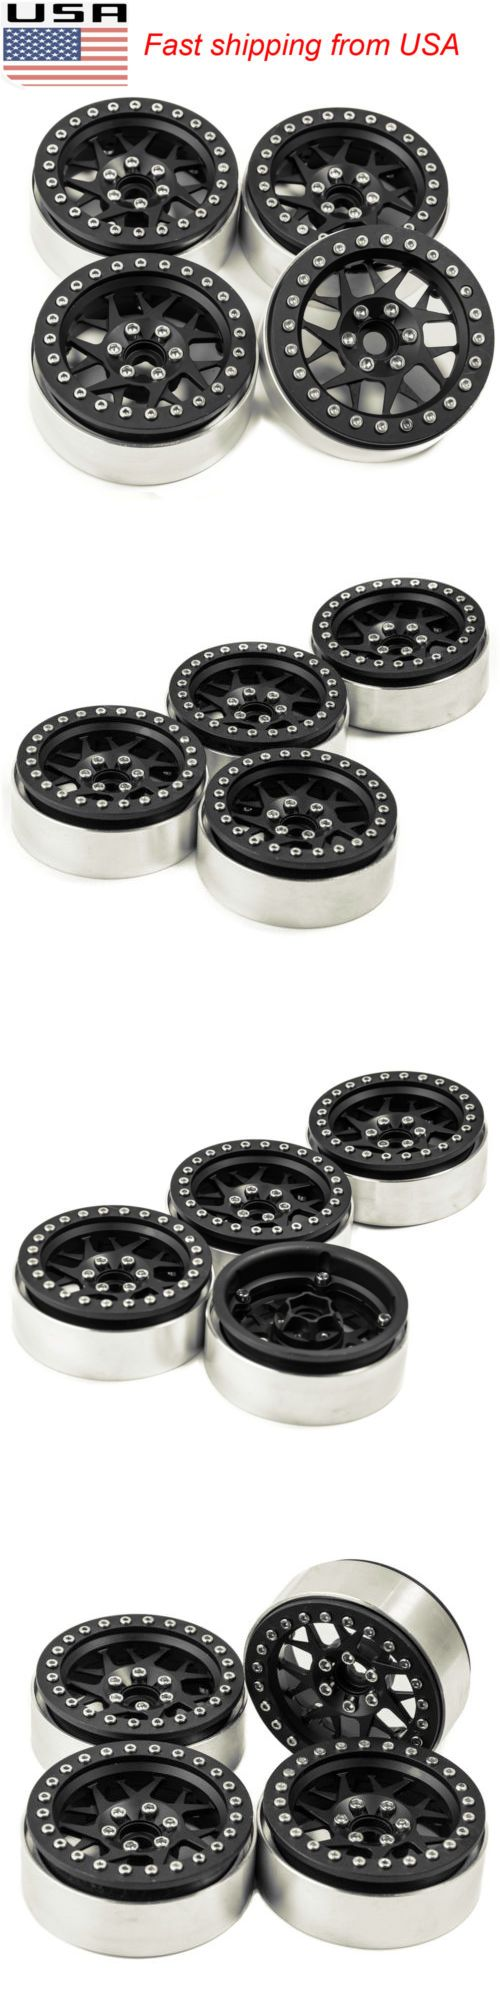 Wheels Tires Rims and Hubs 182201: 4Pcs 2.2 Alloy Beadlock Wheel Rims W Hub For Wraith Rc4wd D90 Rc Crawler Us -> BUY IT NOW ONLY: $56.99 on eBay!